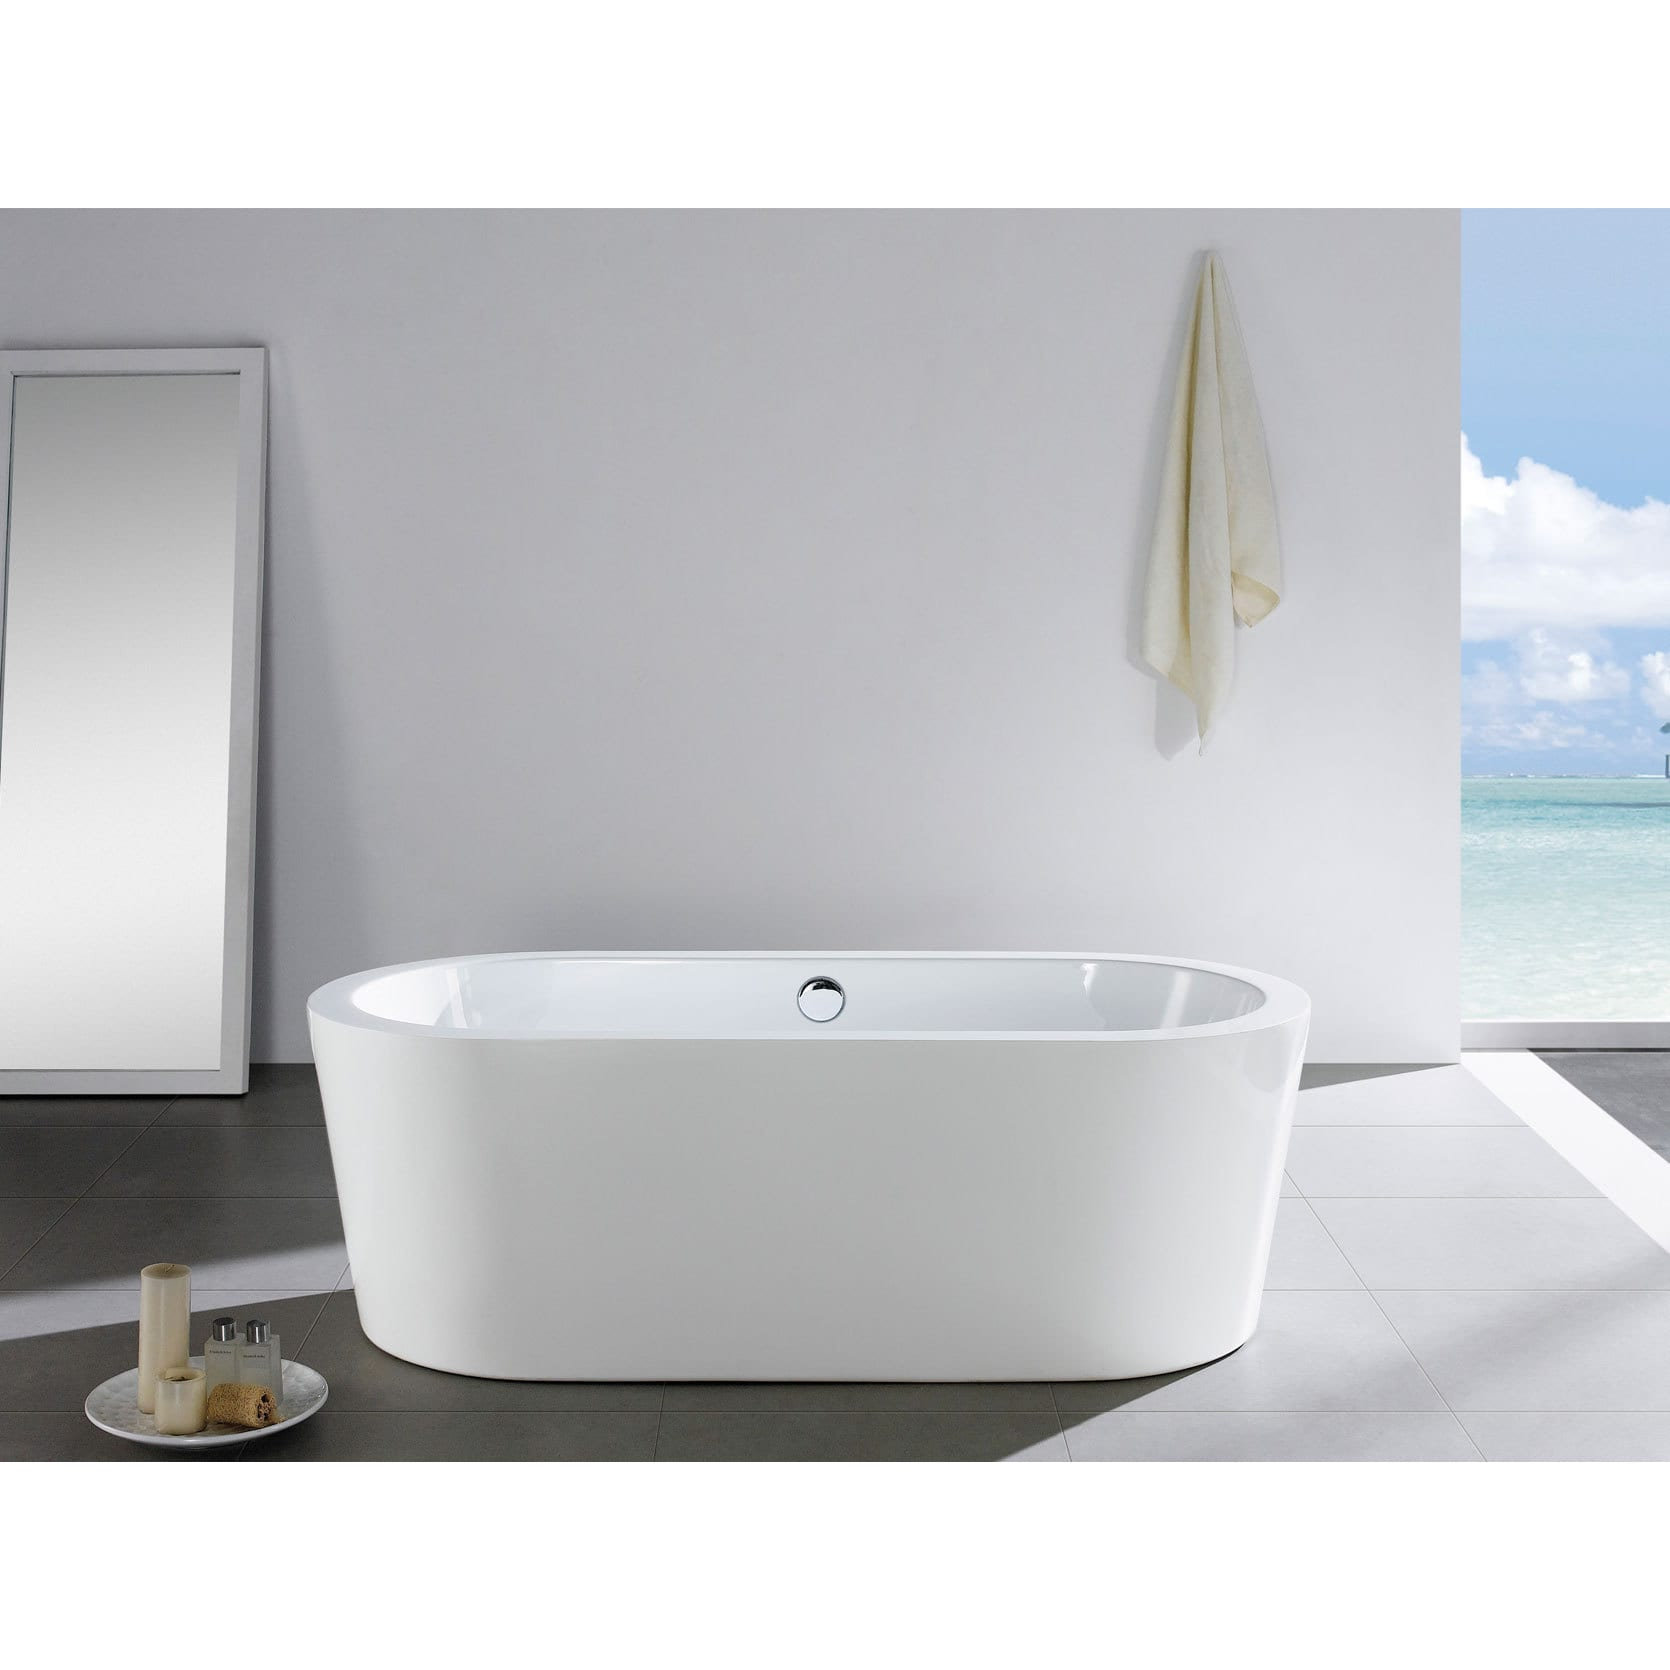 58 X 30 Inch Bathtub • Bathtub Ideas